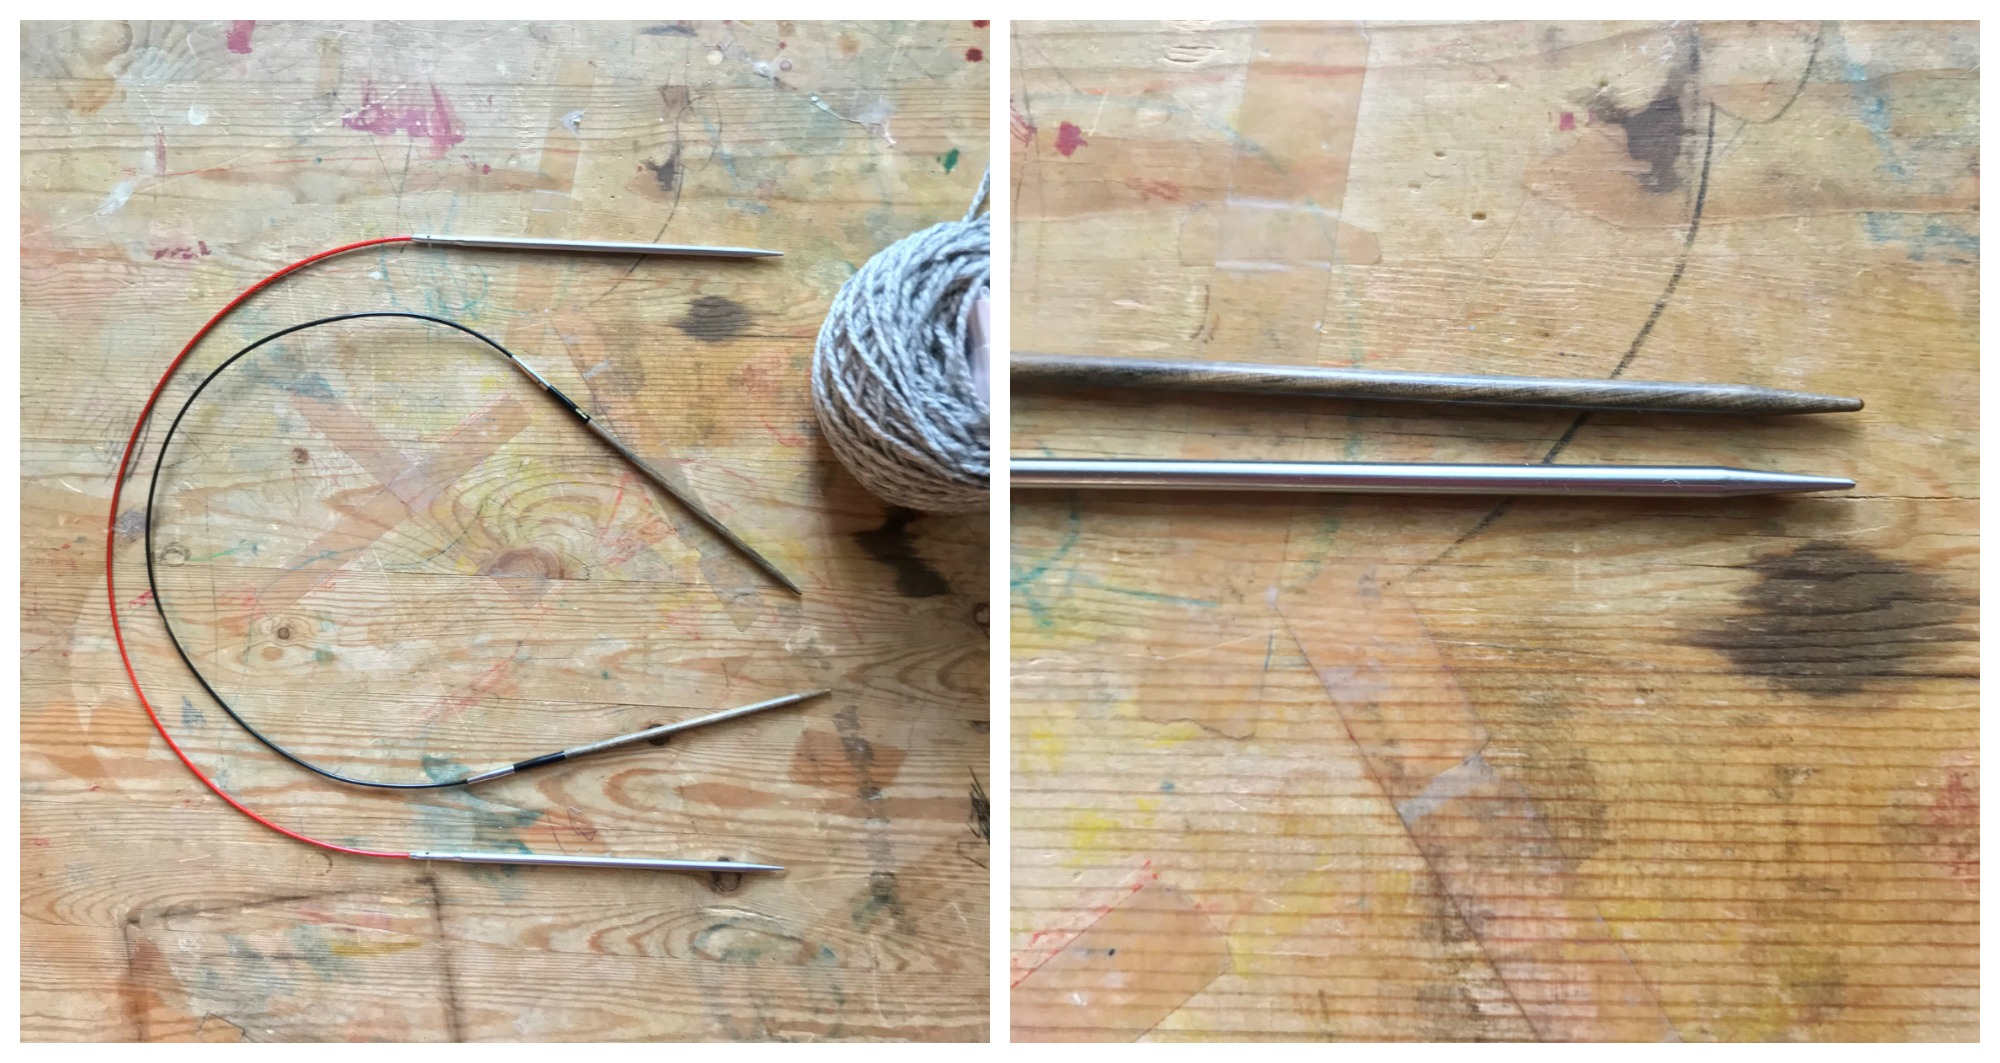 diff needles  Collage.jpg